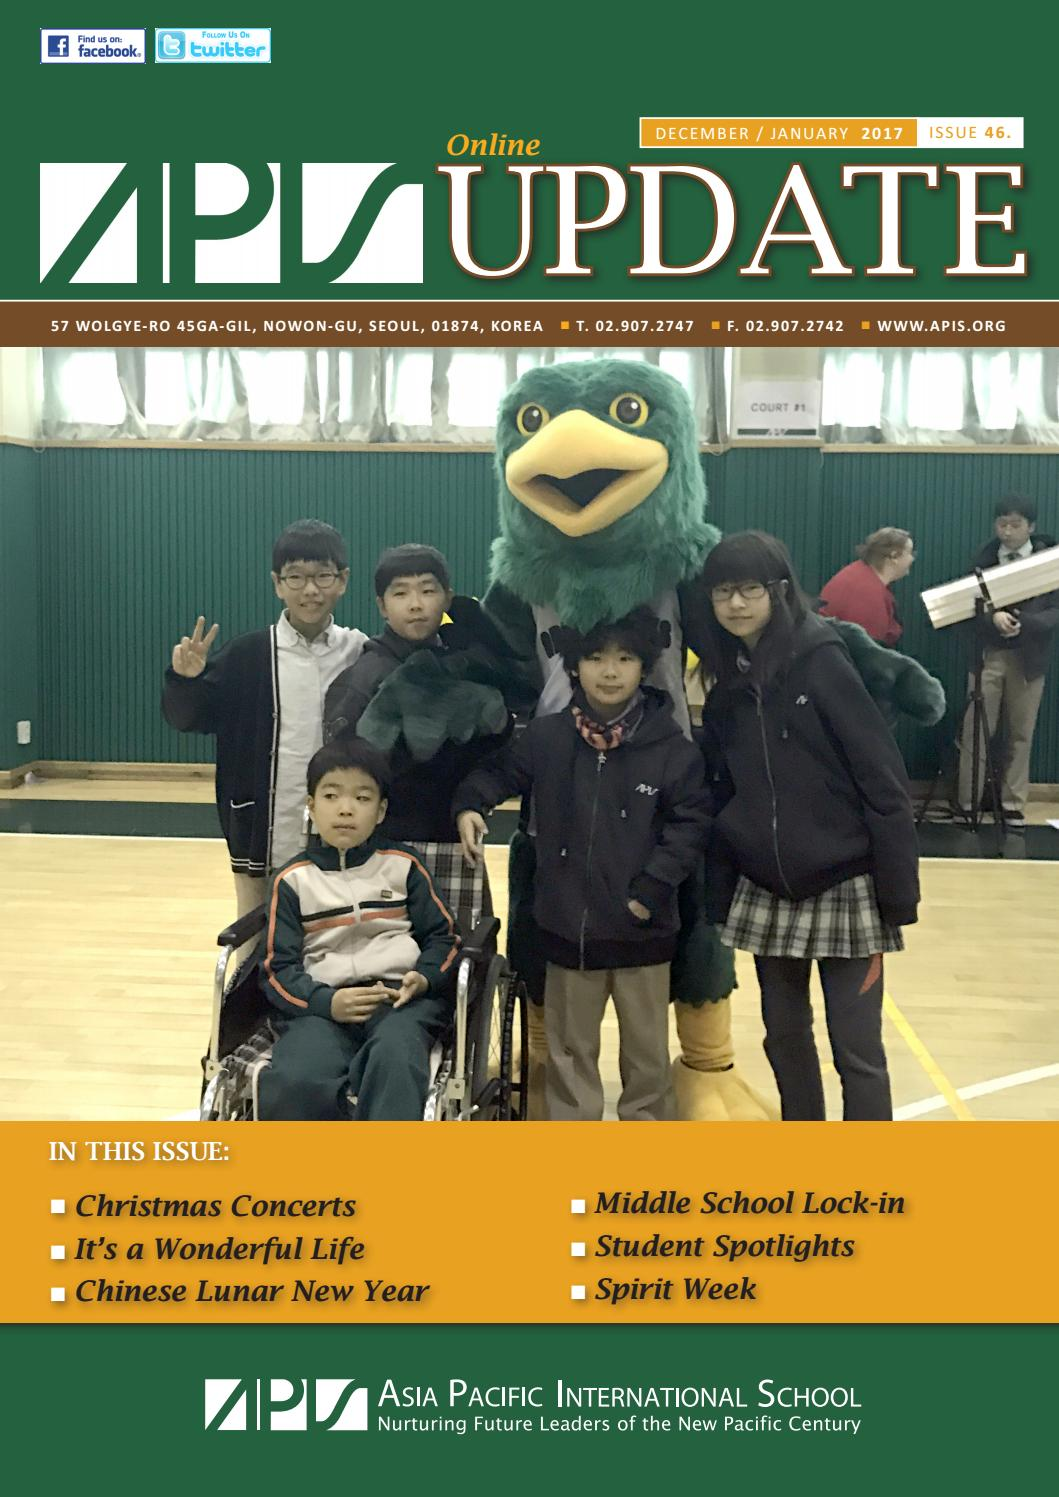 Issue 46 APIS Online Update Dec Jan 2017 by Asia Pacific